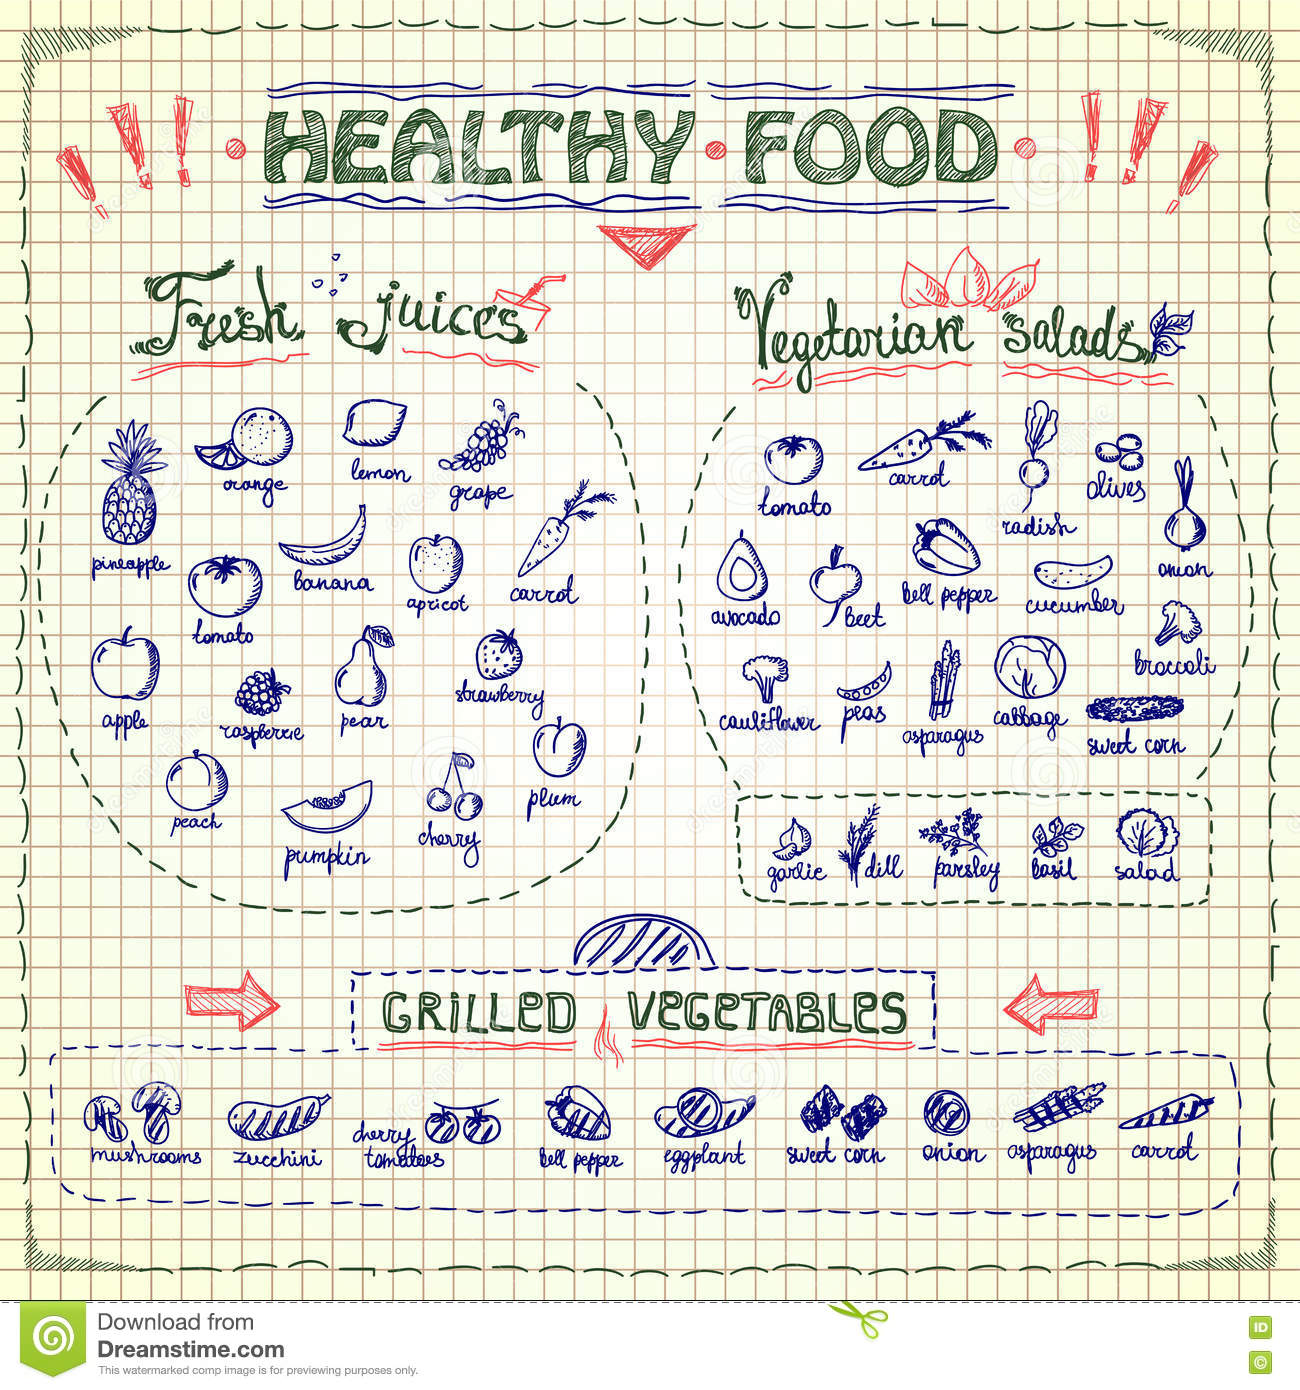 Download Healthy Food Menu List With Hand Drawn Assorted Fruits And Vegetables Graphic Symbols Stock Vector